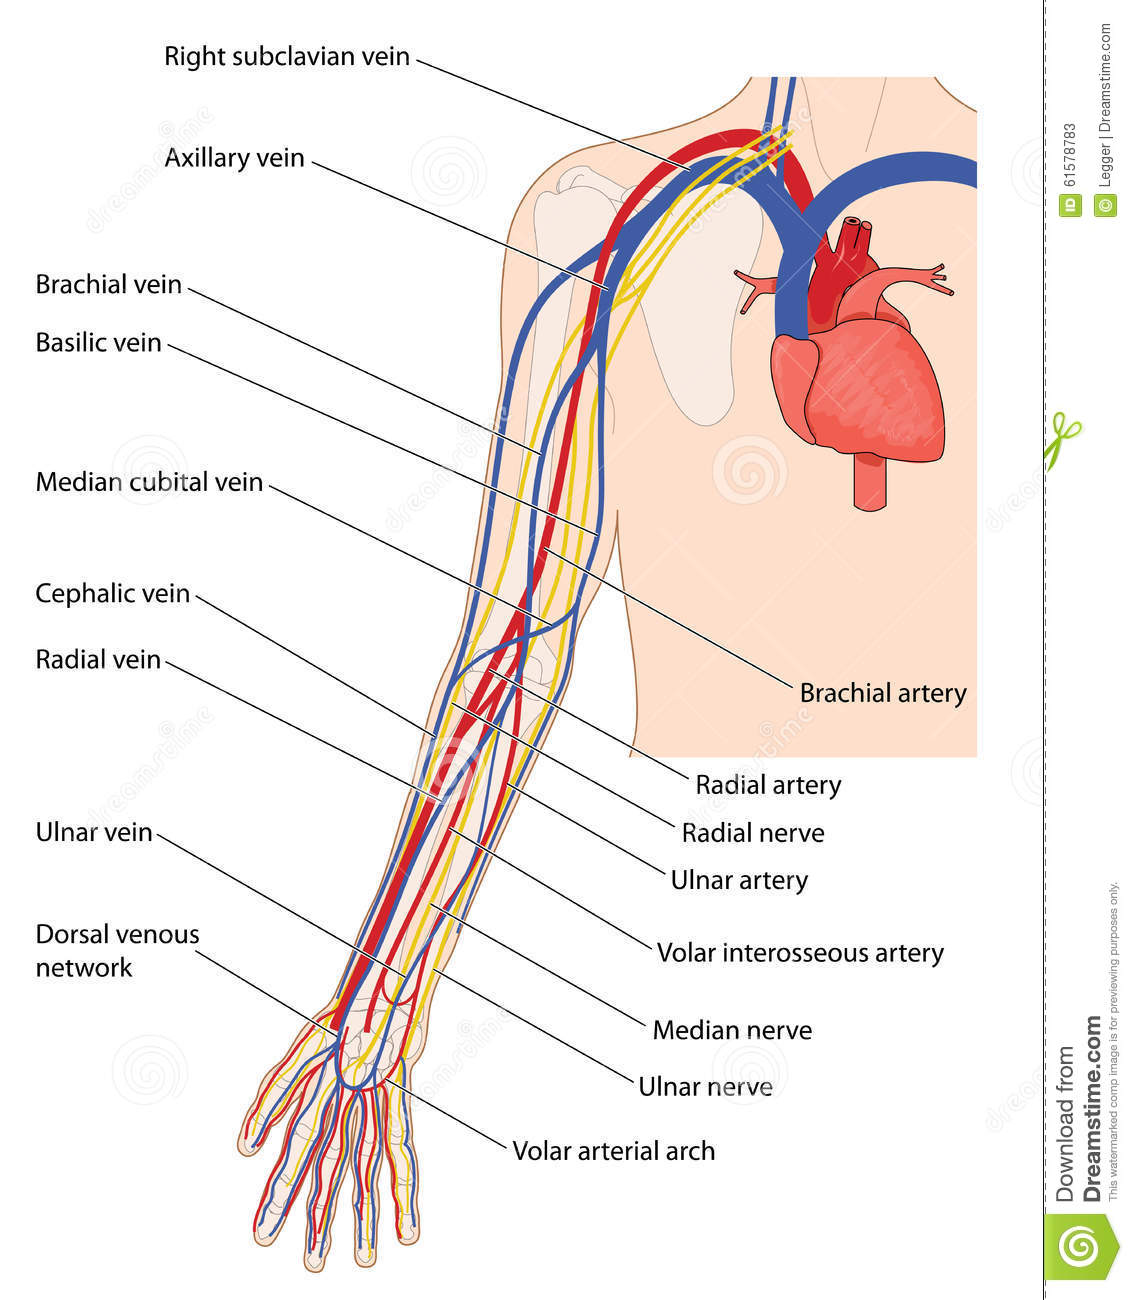 hight resolution of arteries veins and nerves of the arm from the heart down to the fingers created in adobe illustrator contains transparent objects eps 10